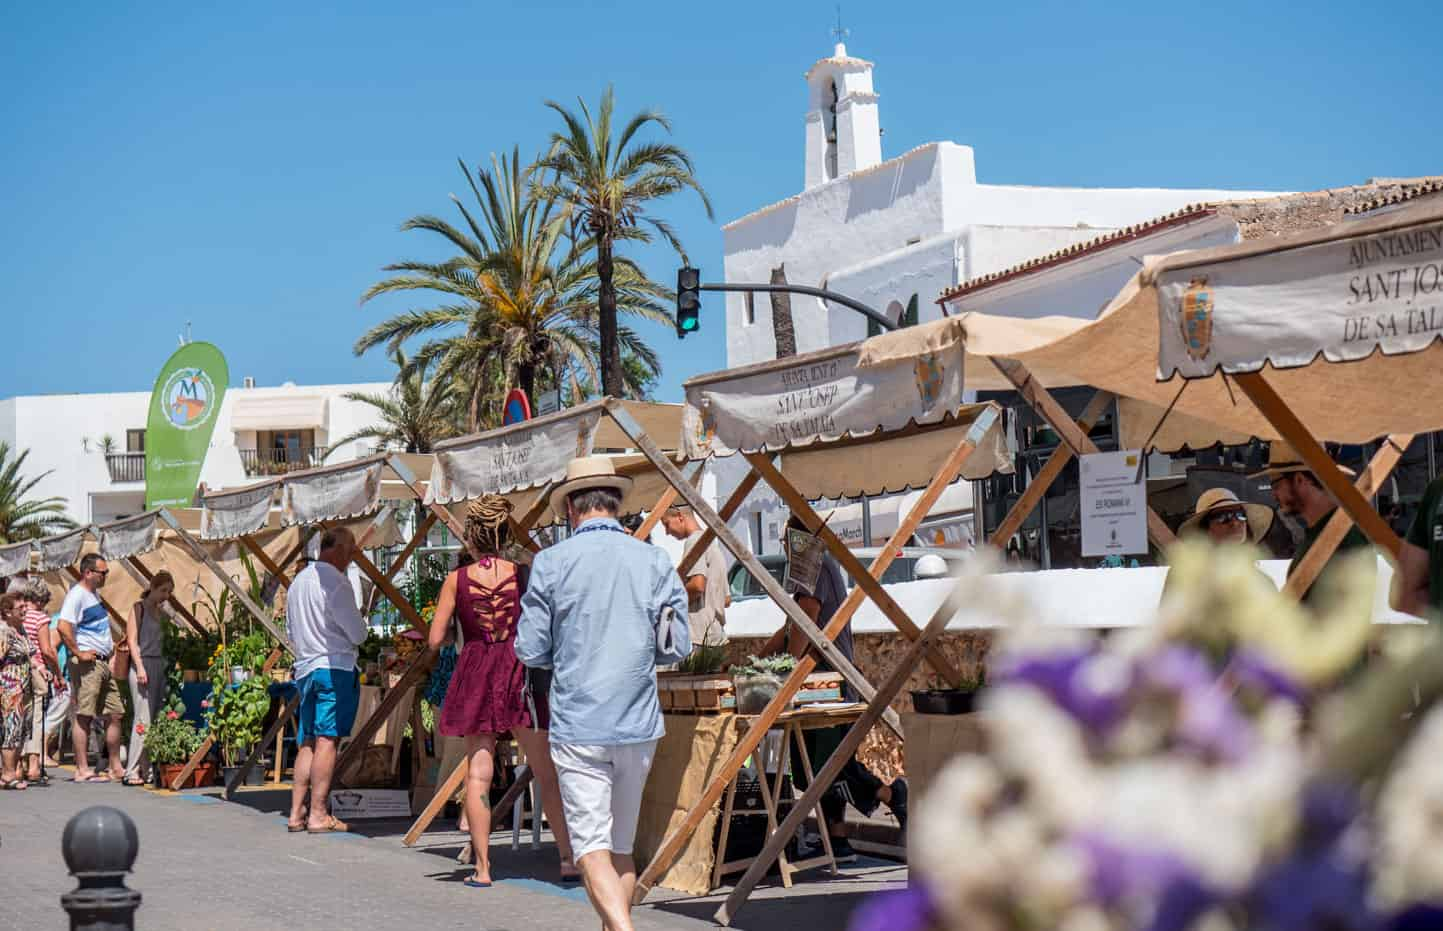 mercadillo-san-jose-ibiza-welcometoibiza5